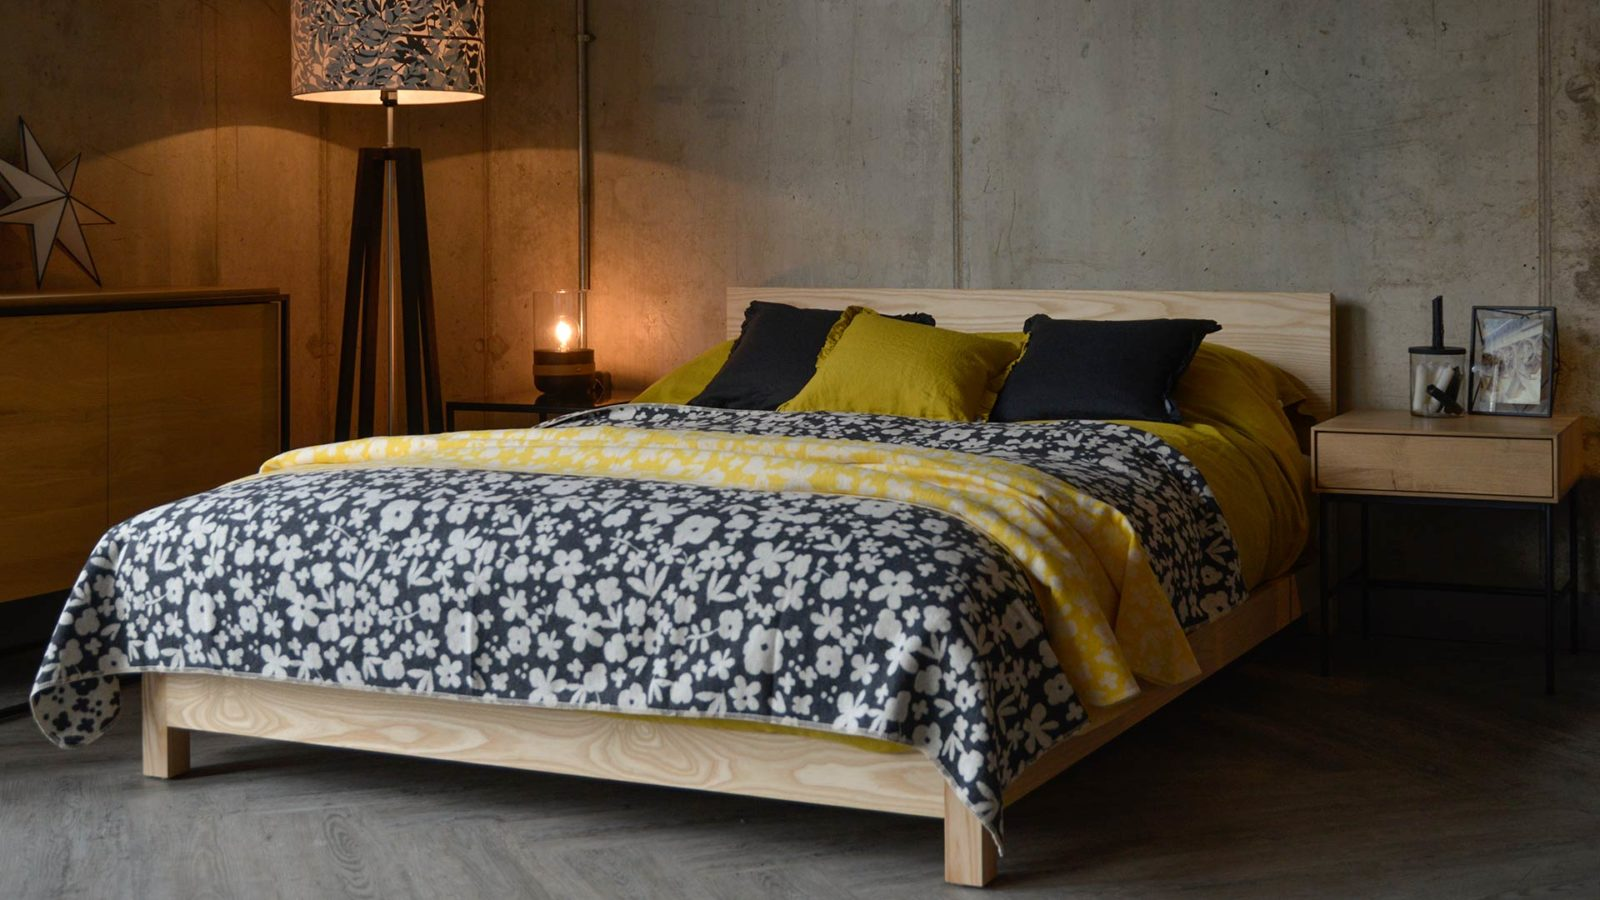 Modern floral Marimekko style cotton rich soft throws in charcoal and yellow shown on Sonora low wooden bed